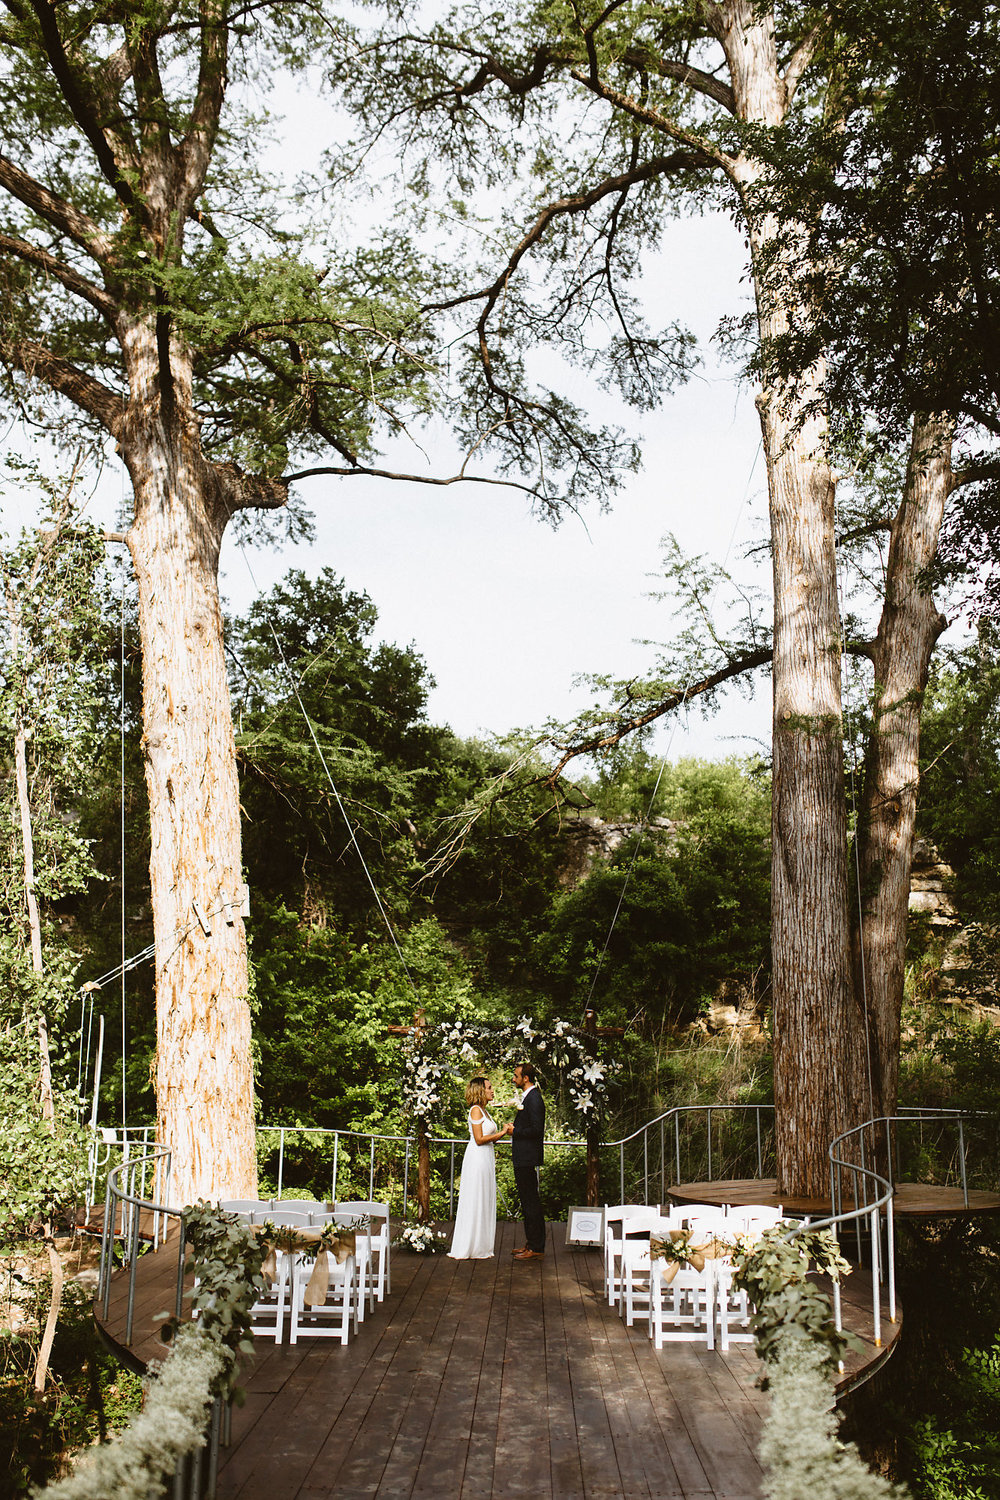 austintreehousewedding.jpg